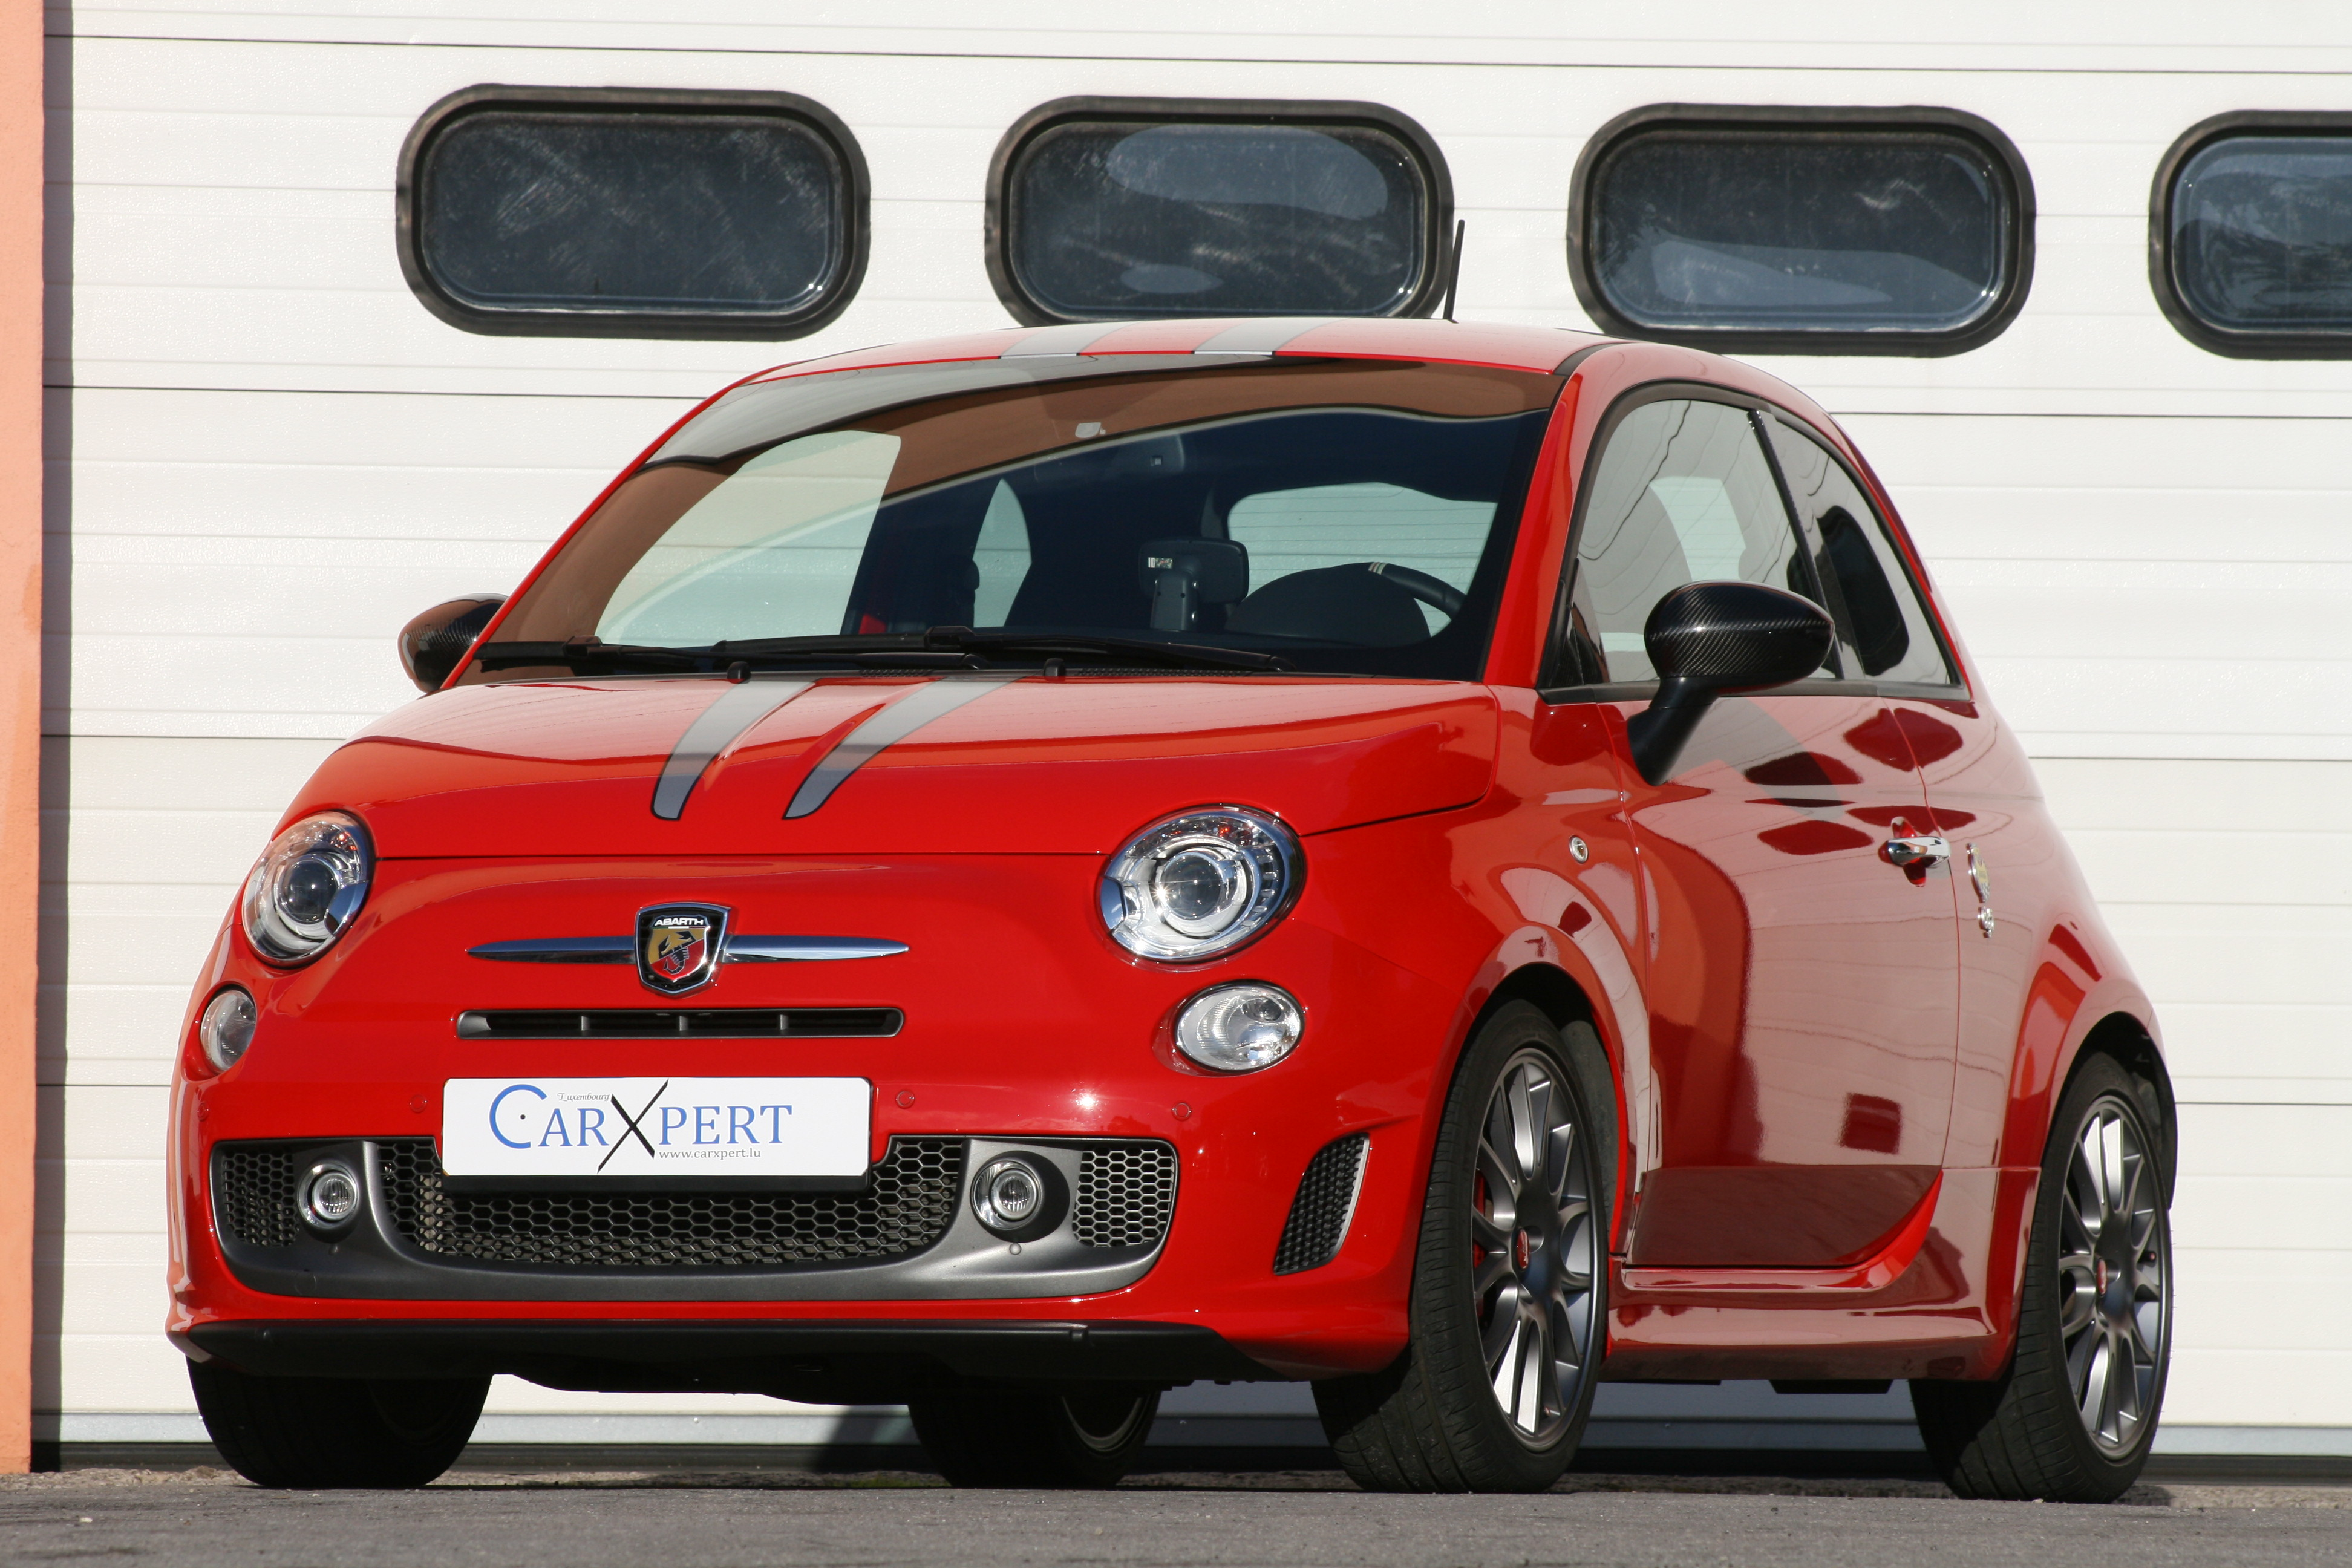 2019 Fiat 695 Abarth Tributo Ferrari photo - 6